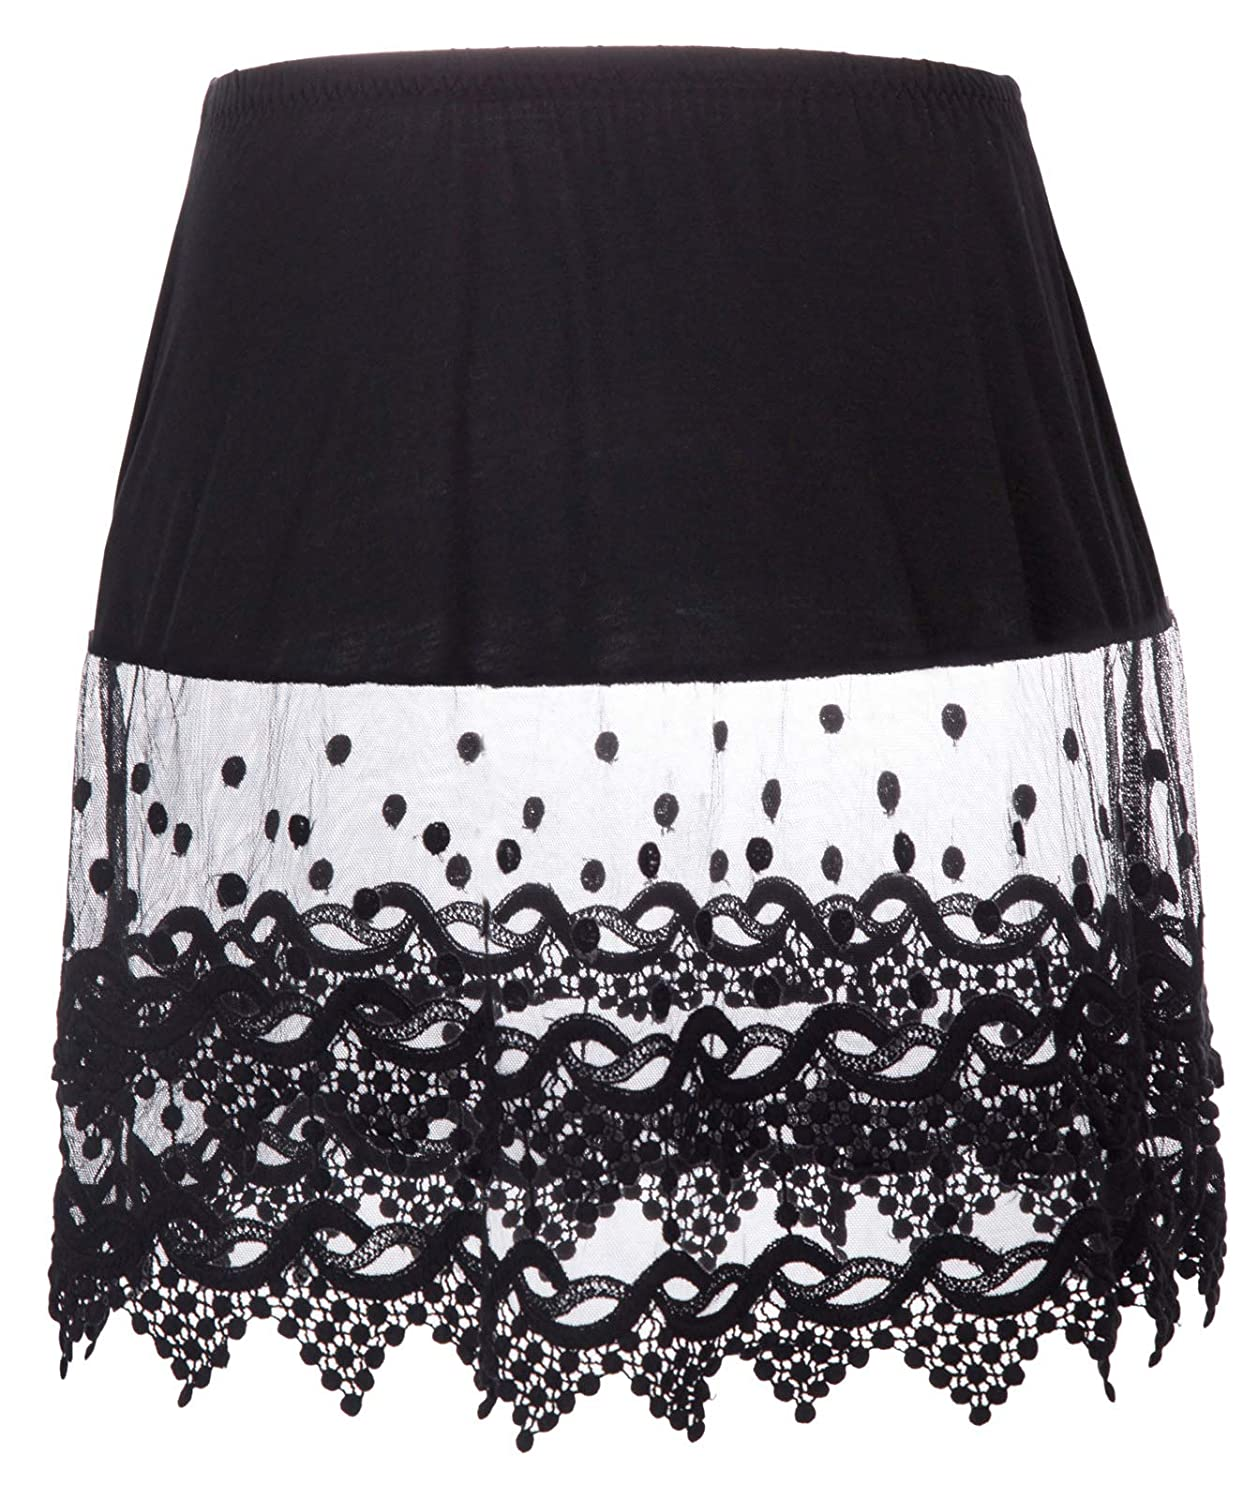 Black 1030 GRACE KARIN Women's Lace Extender Half Slip Crochet Lace Skirts Accessories